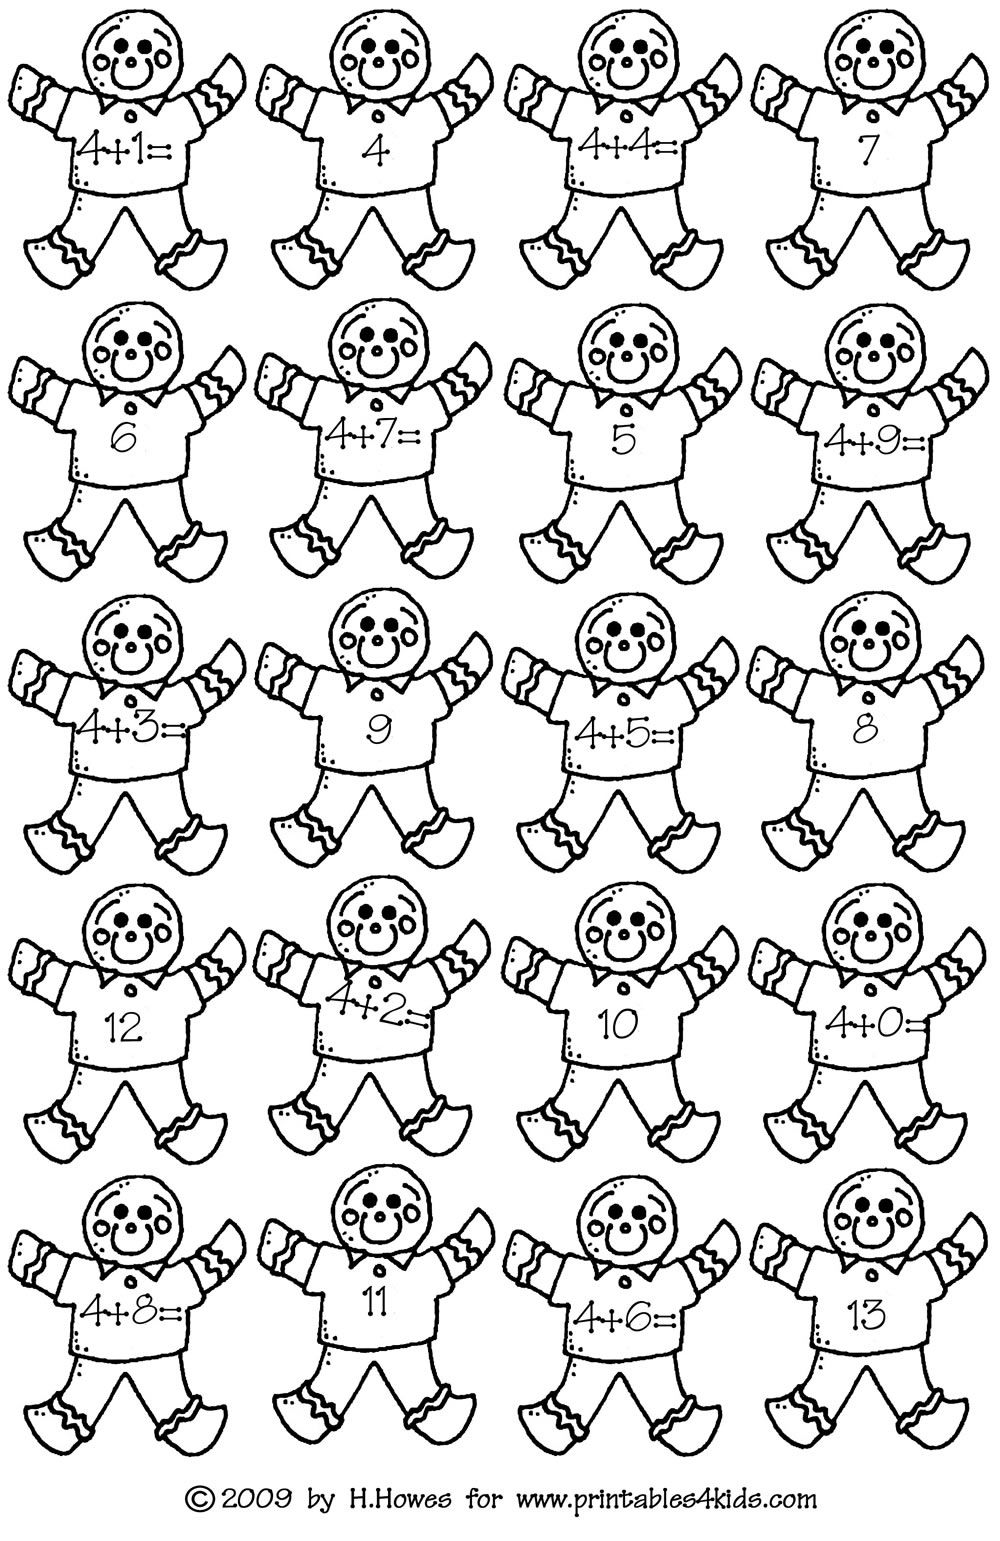 Pin by ATBOT/ The Book Bug on Gingerbread man activities